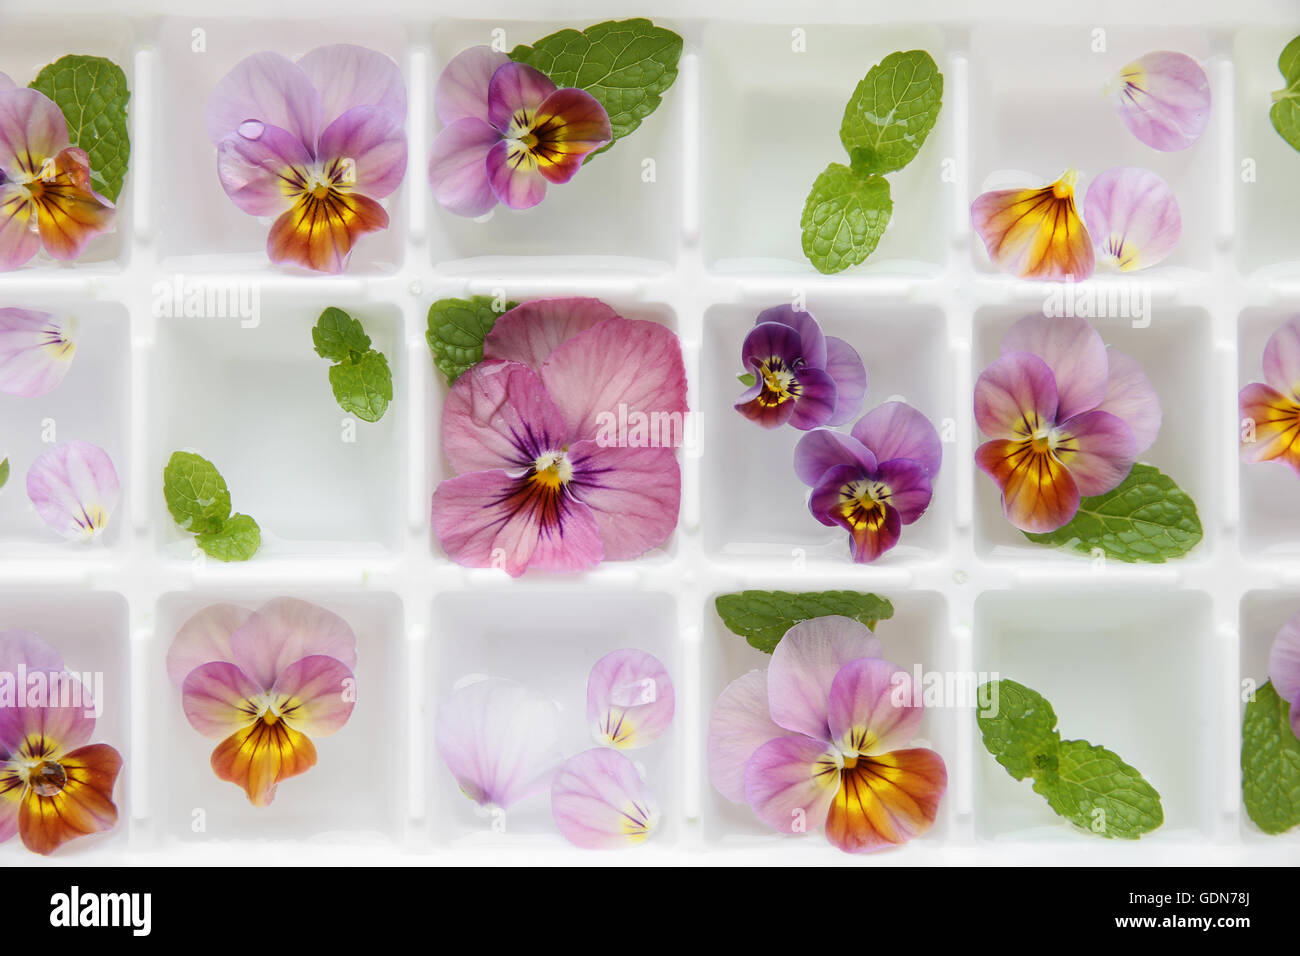 Closeup edible flowers and mint in ice cubes tray on white vintage closeup edible flowers and mint in ice cubes tray on white vintage linen background mightylinksfo